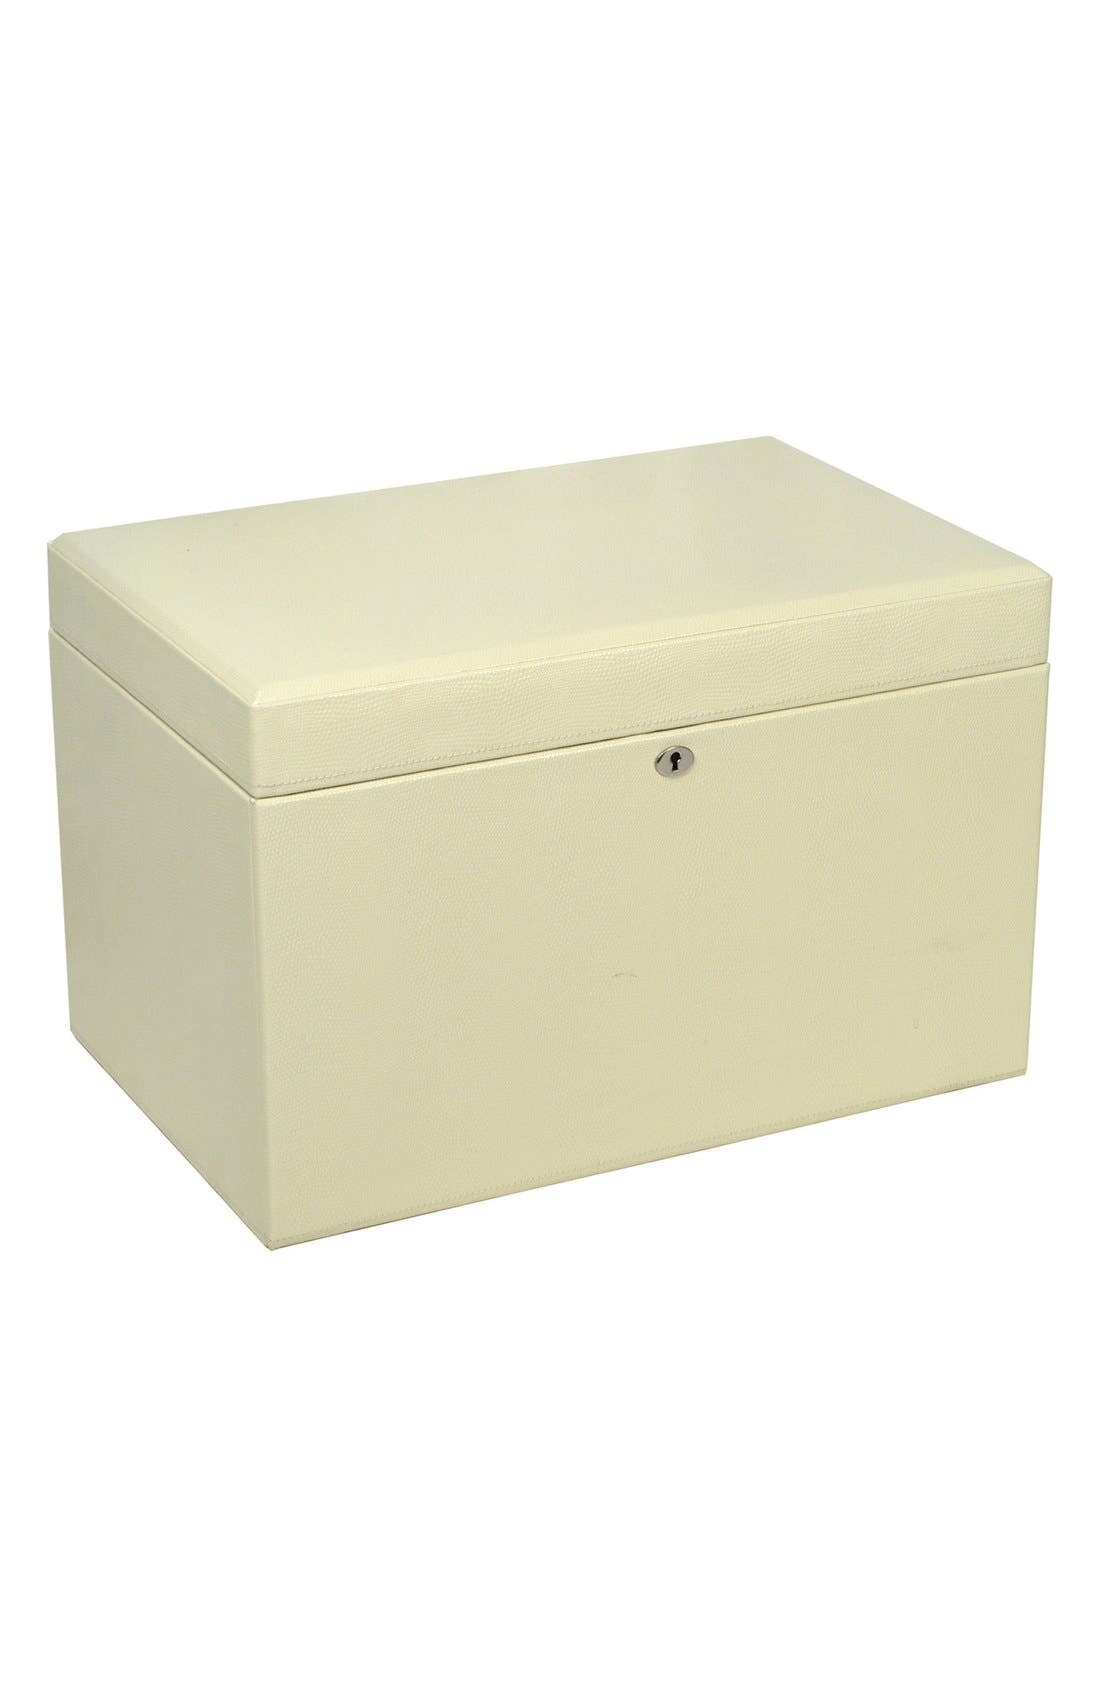 London Large Jewelry Box,                             Alternate thumbnail 4, color,                             CREAM